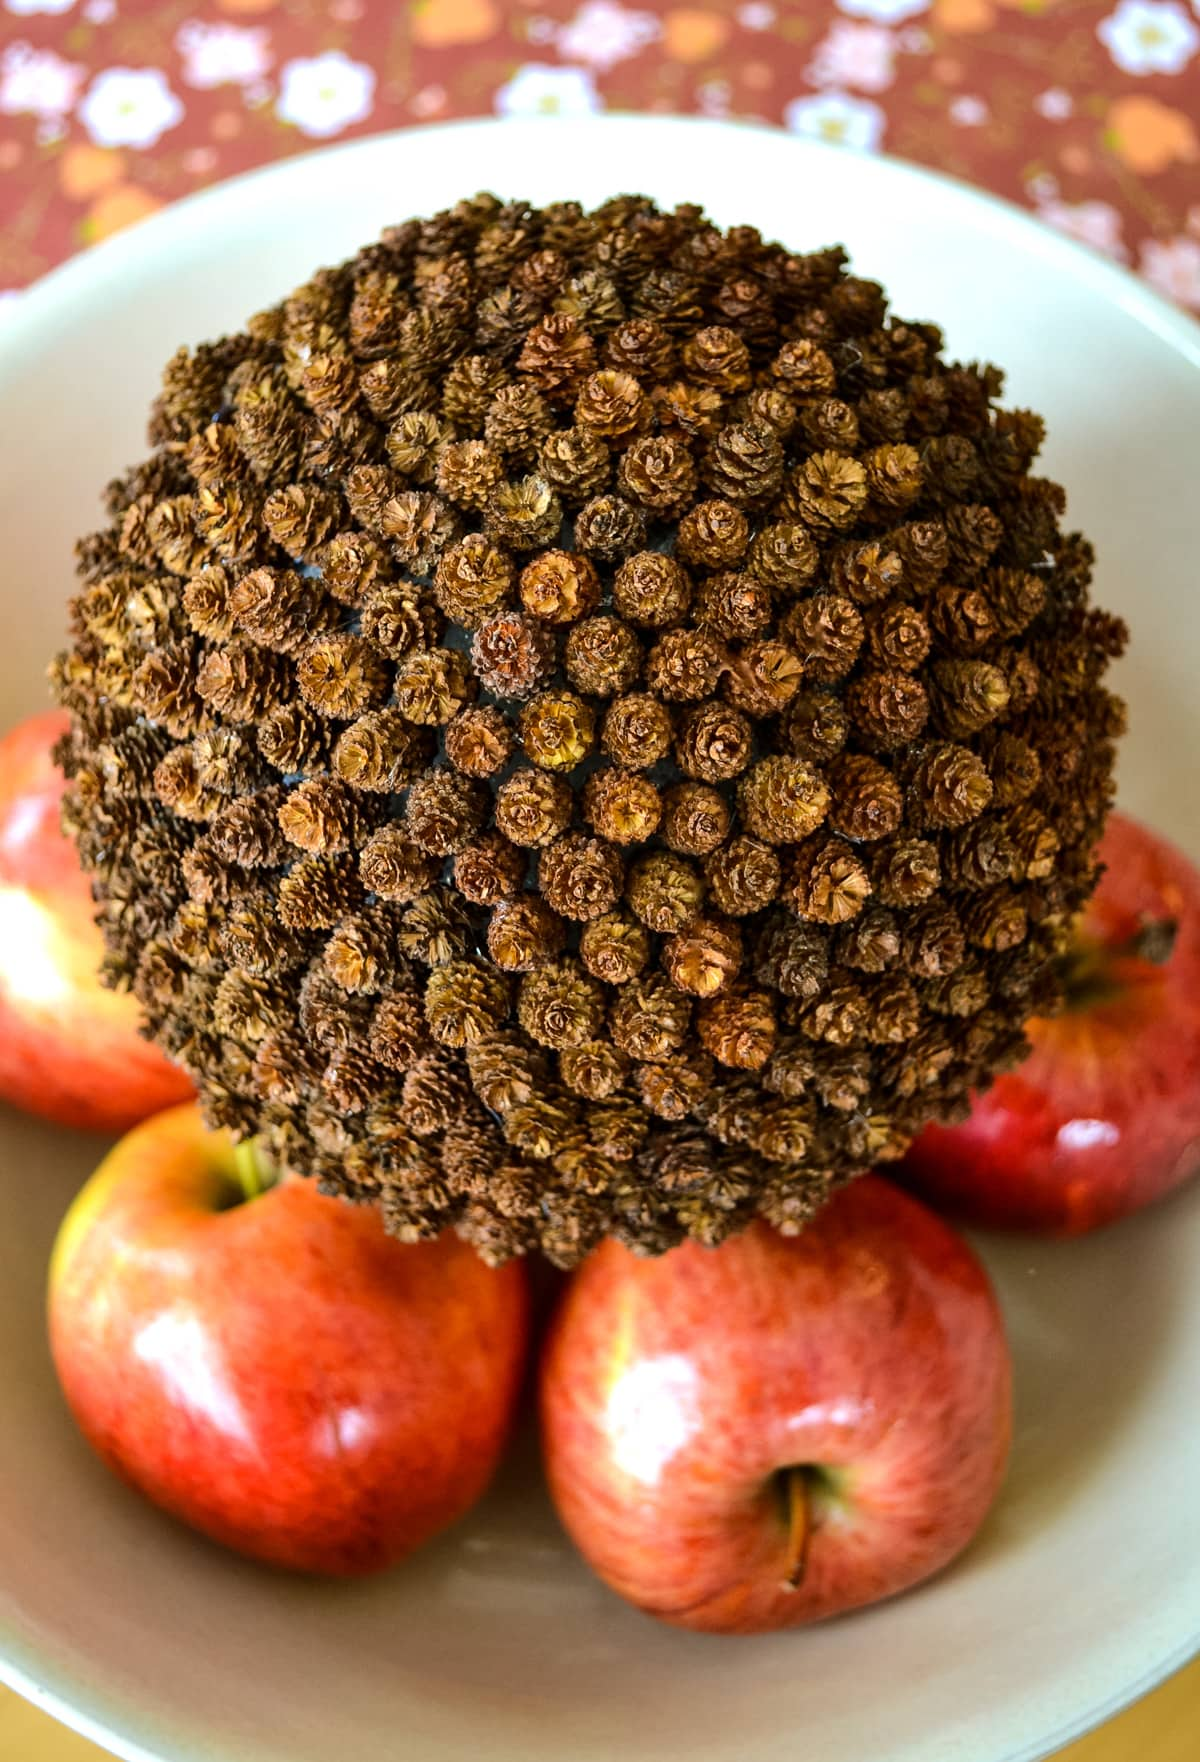 A Teeny Tiny Pine Cone Pomander in a bowl of apples